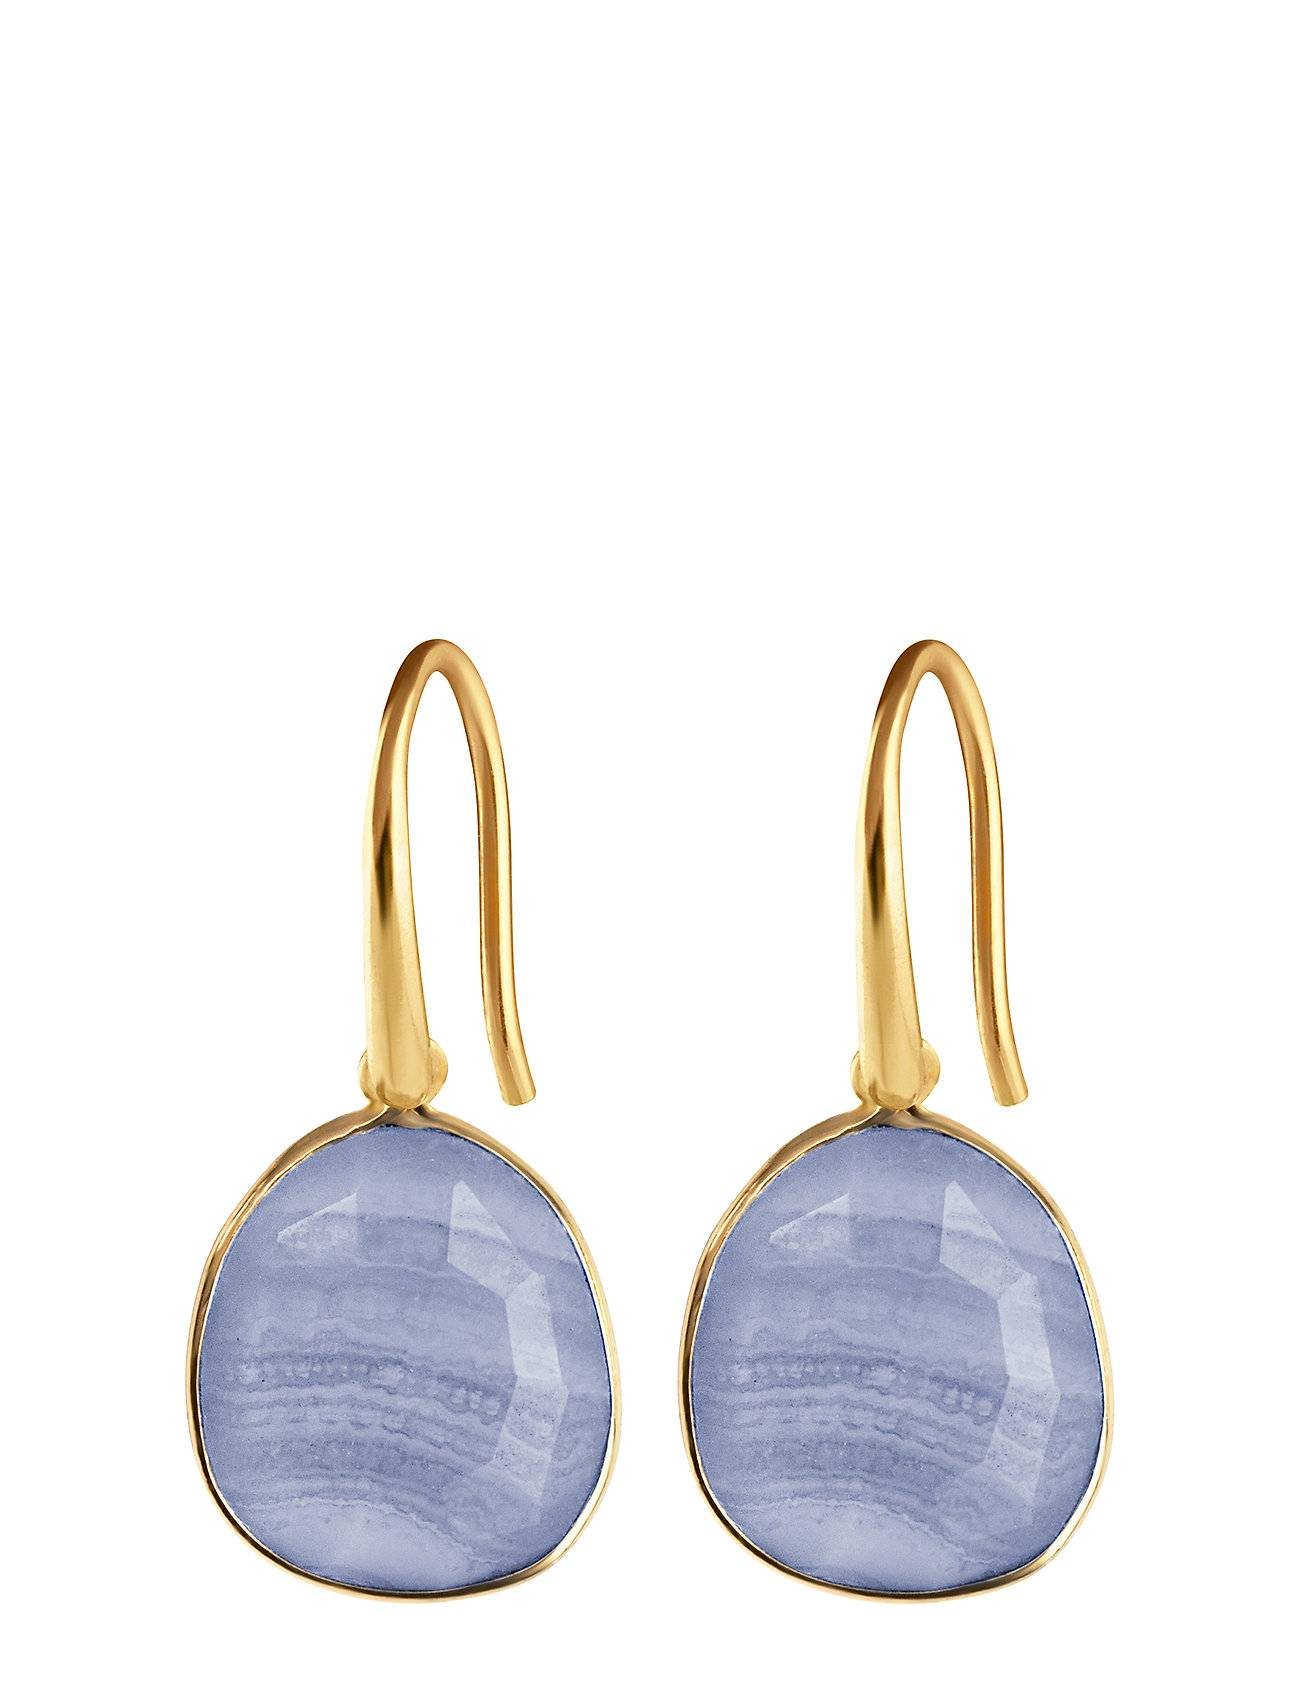 Syster P Glam Glam Earrings Gold, Blue Lace Agate